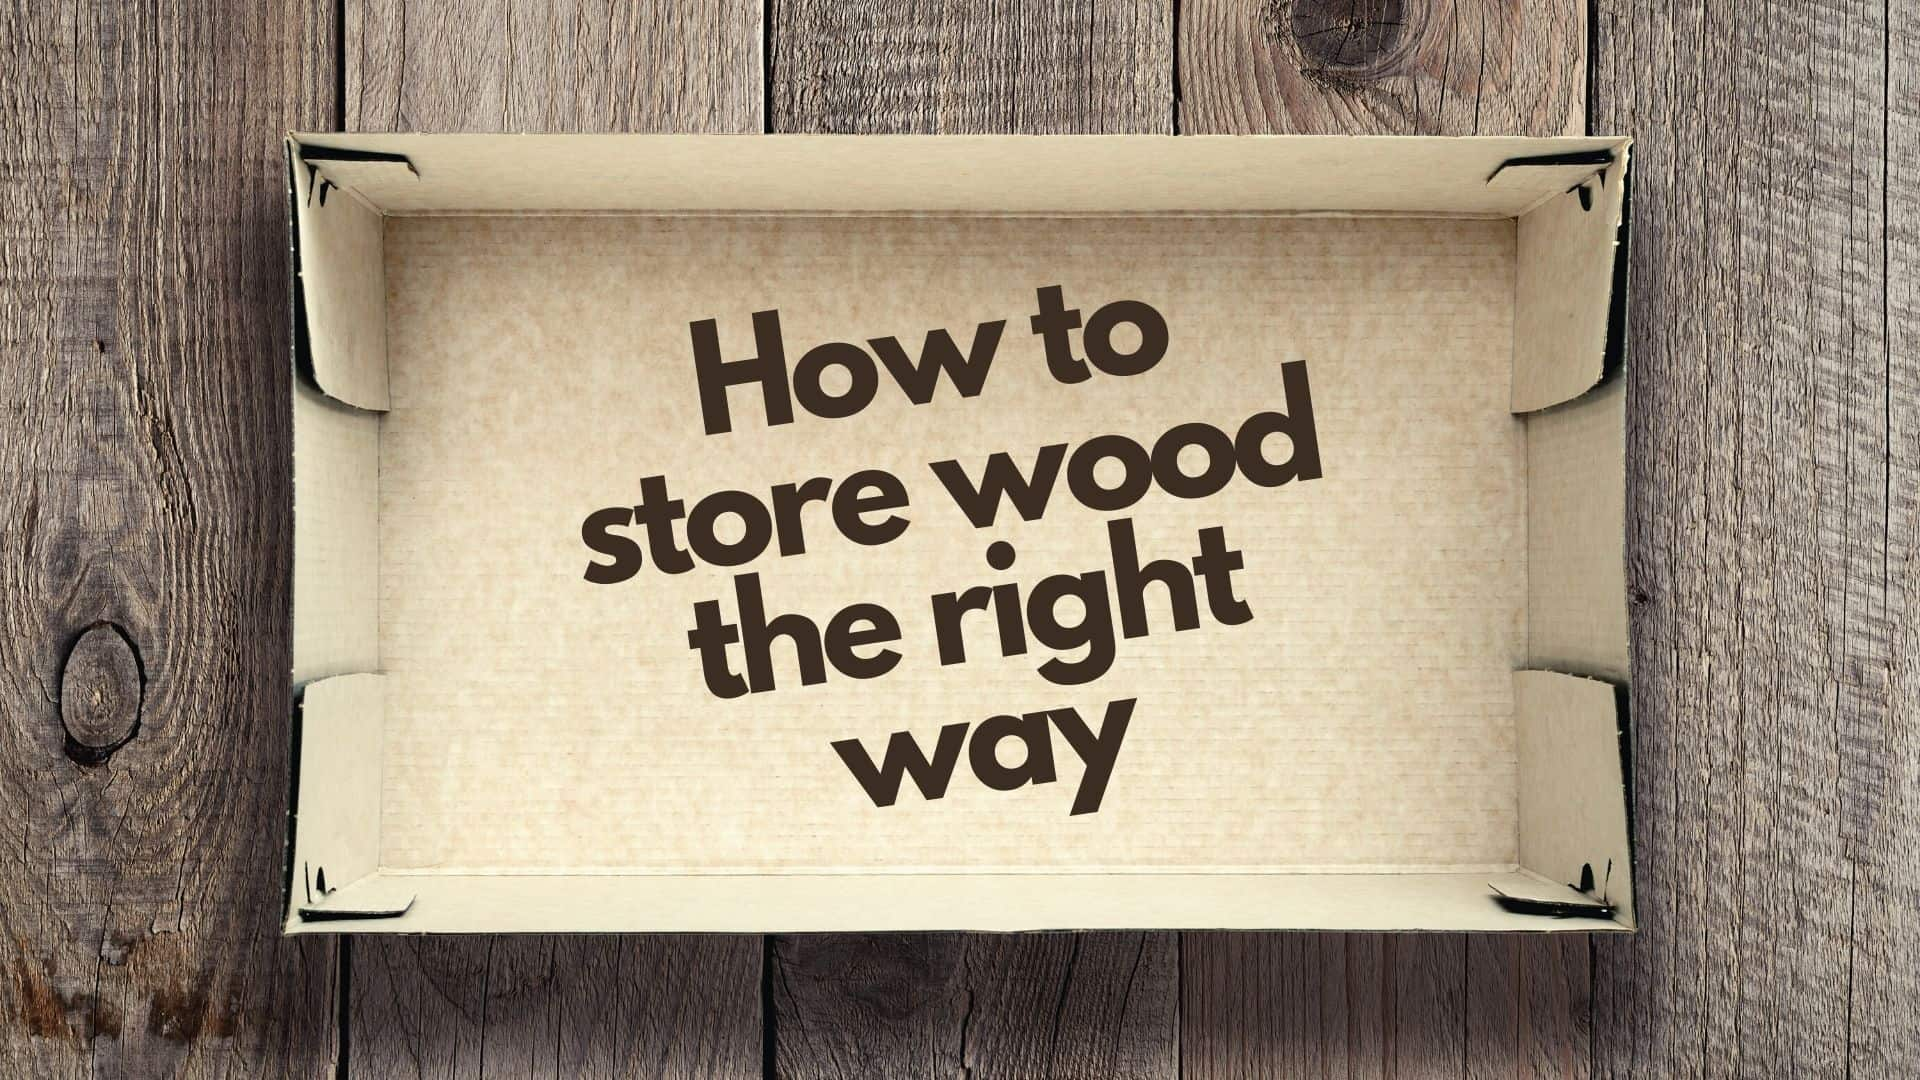 How do you store wood for smoking? Guide to proper wood storage